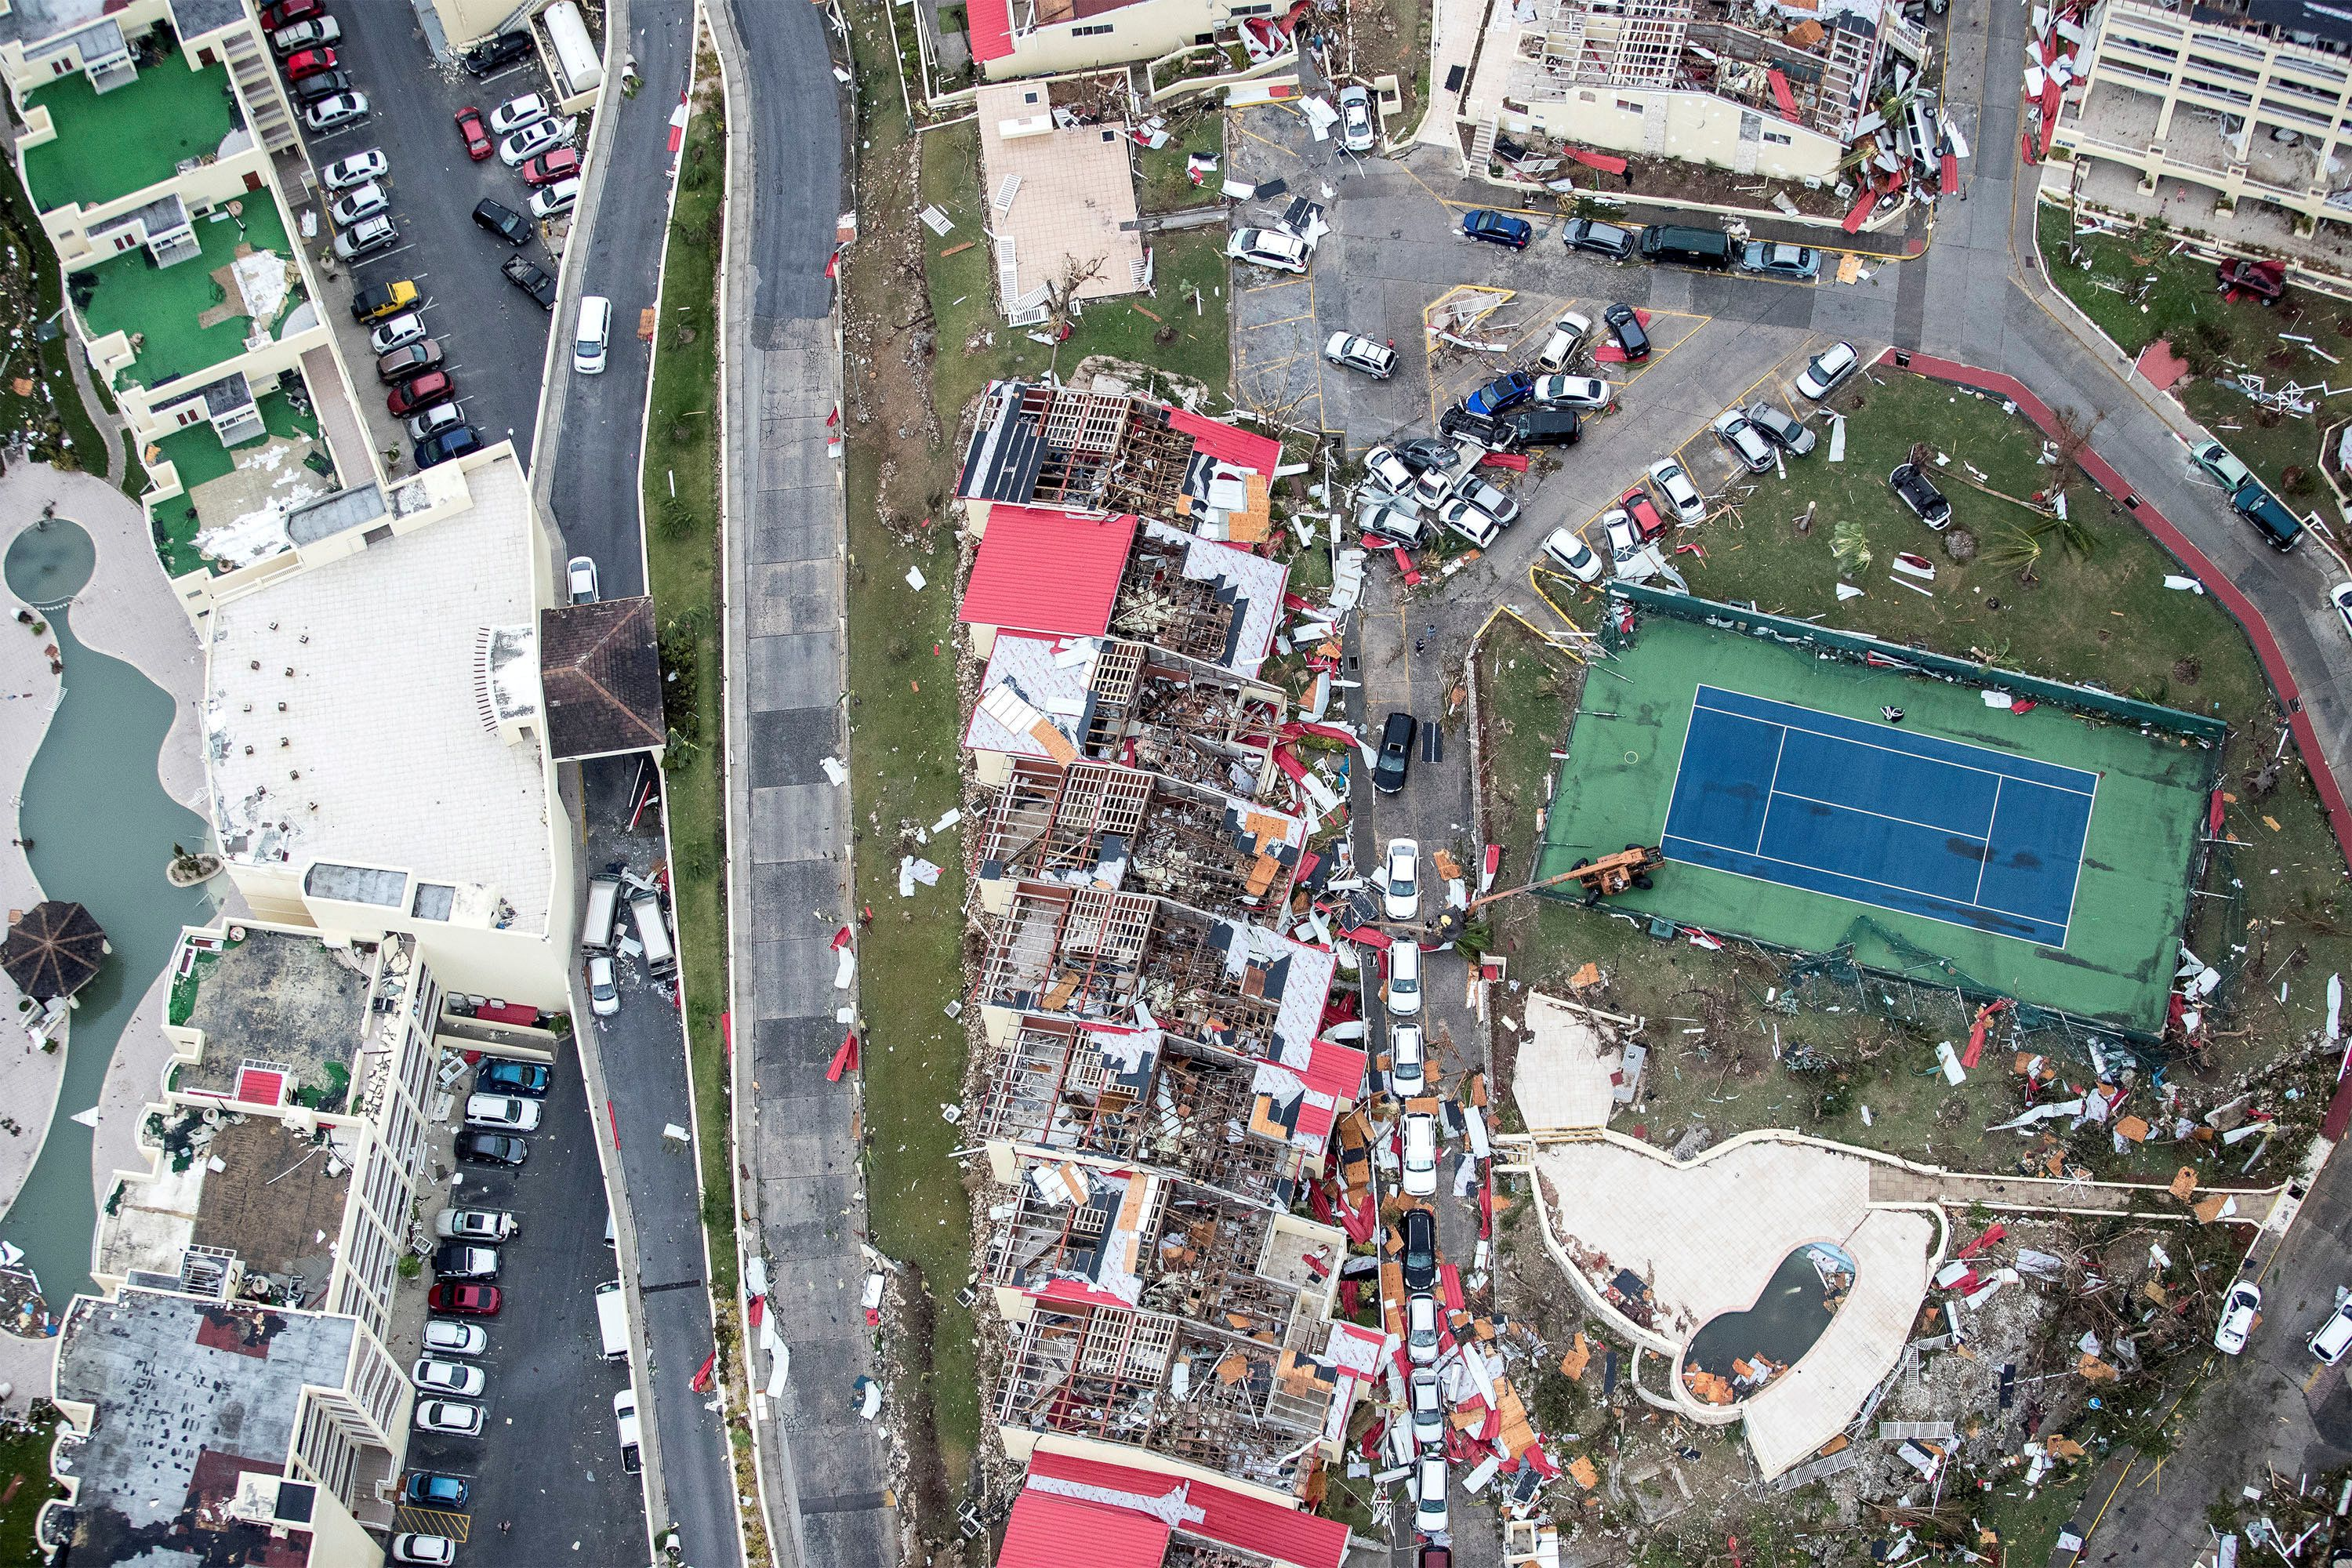 View of the aftermath of Hurricane Irma on the Dutch side of St. Martin on Sept. 6, 2016.